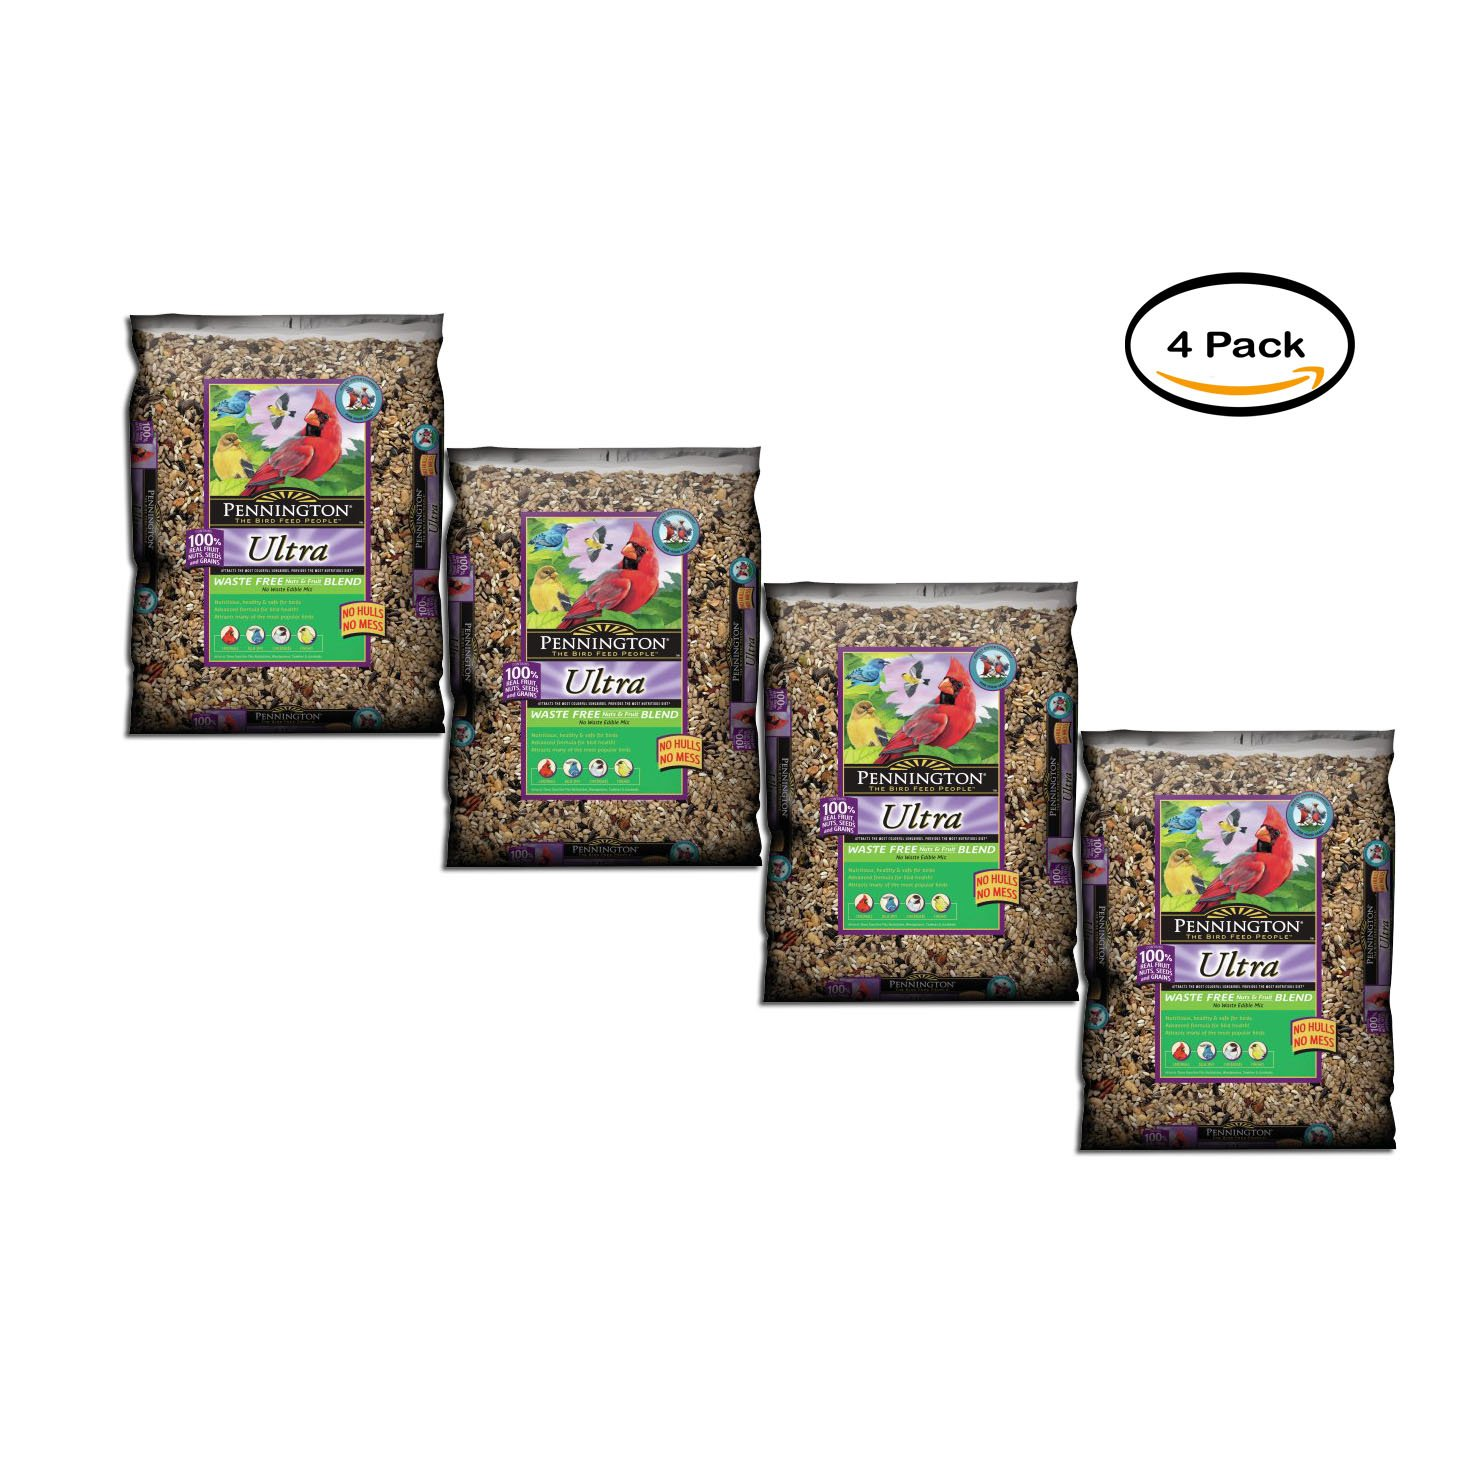 PACK OF 4 - Pennington Wild Bird Feed and Seed Ultra Nuts and Fruit Waste Free, 6.0 LB